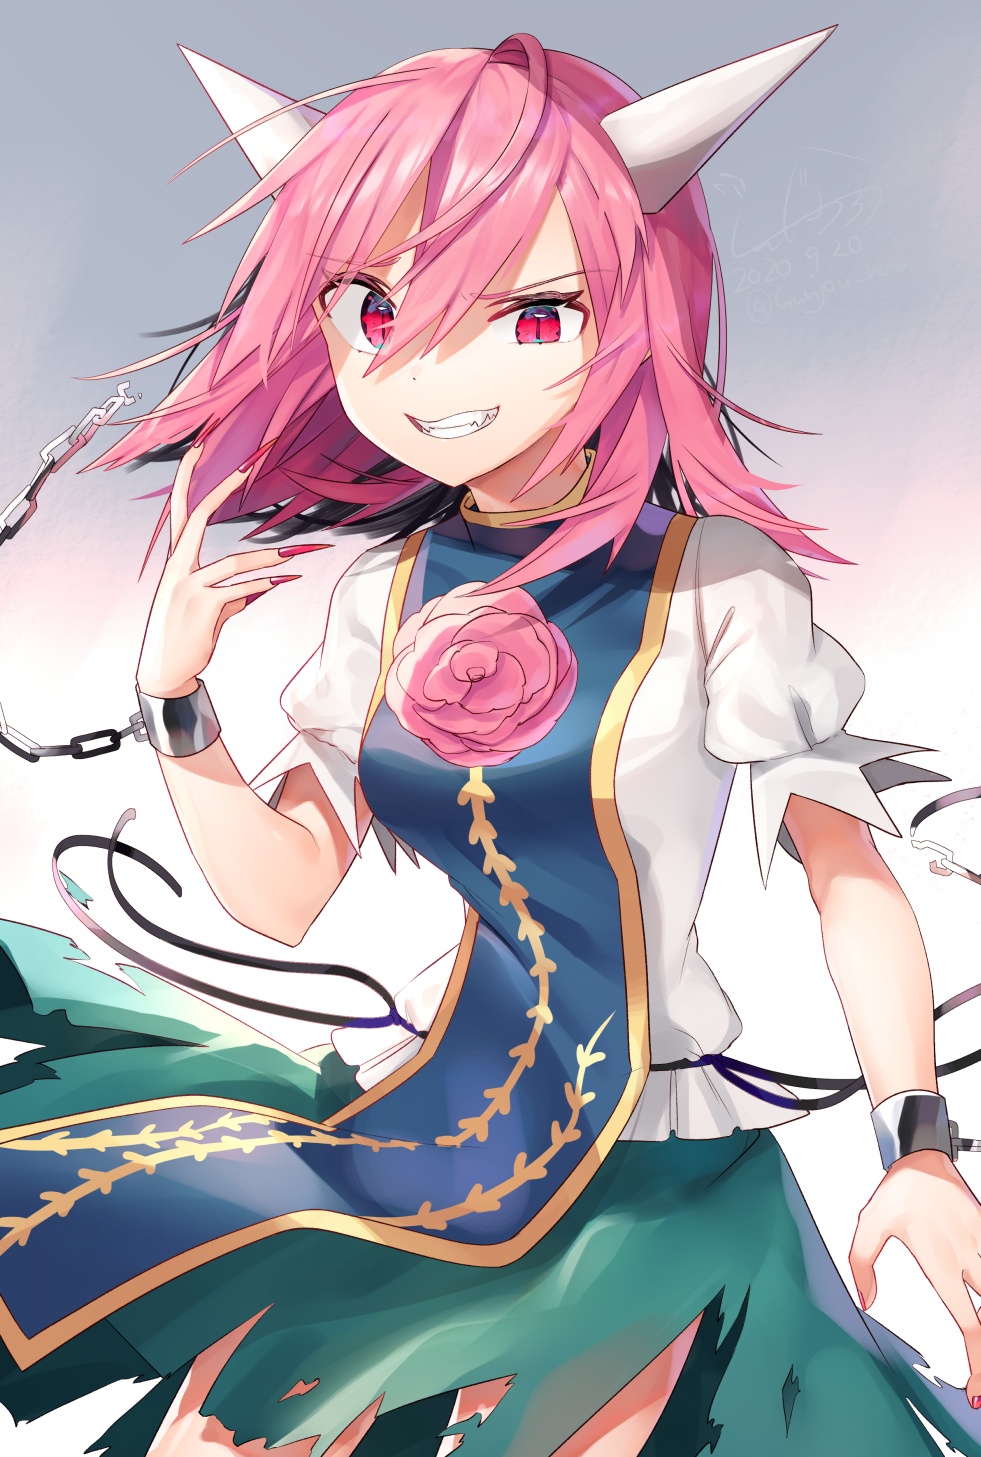 1girl arm_at_side arm_up breasts chain claws contrapposto cowboy_shot cuffs eyebrows_visible_through_hair fangs flower green_skirt gunjou_row highres horns ibaraki_douji's_arm ibaraki_kasen looking_at_viewer medium_breasts pink_eyes pink_flower pink_hair pink_rose puffy_short_sleeves puffy_sleeves red_nails rose shackles shirt short_sleeves simple_background skirt slit_pupils sneer solo standing tabard torn_clothes torn_skirt touhou uneven_eyes white_background white_shirt